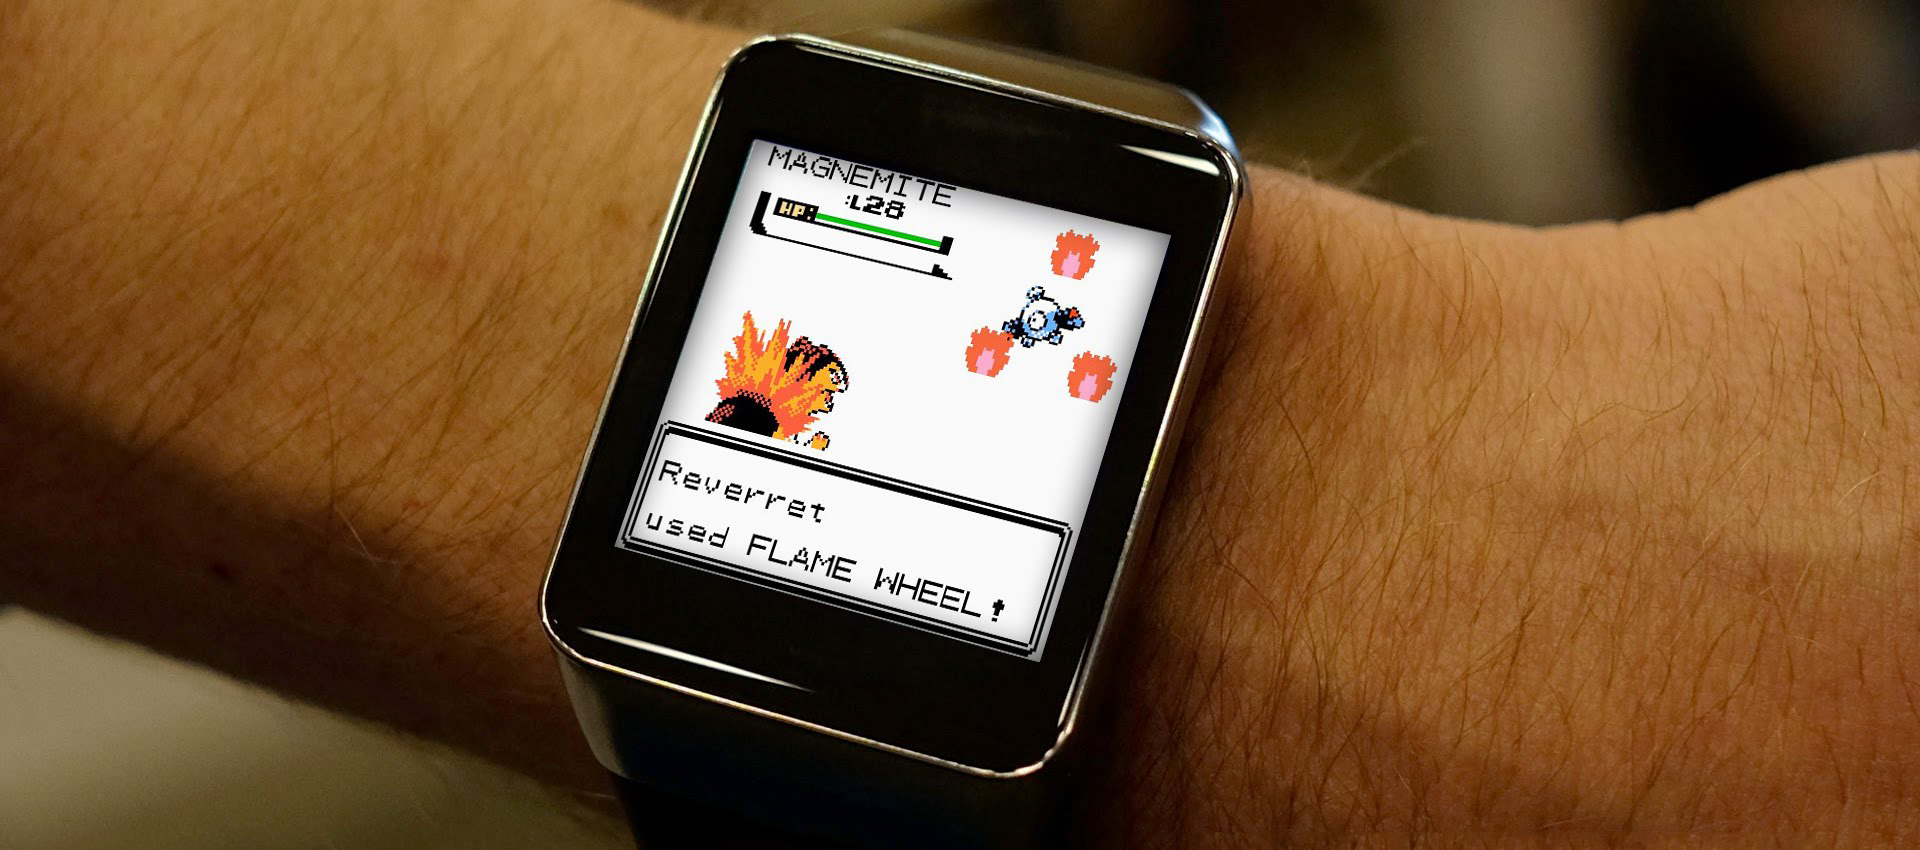 Gameboy on Arm: Watch Pokemon and Fallout running on Android